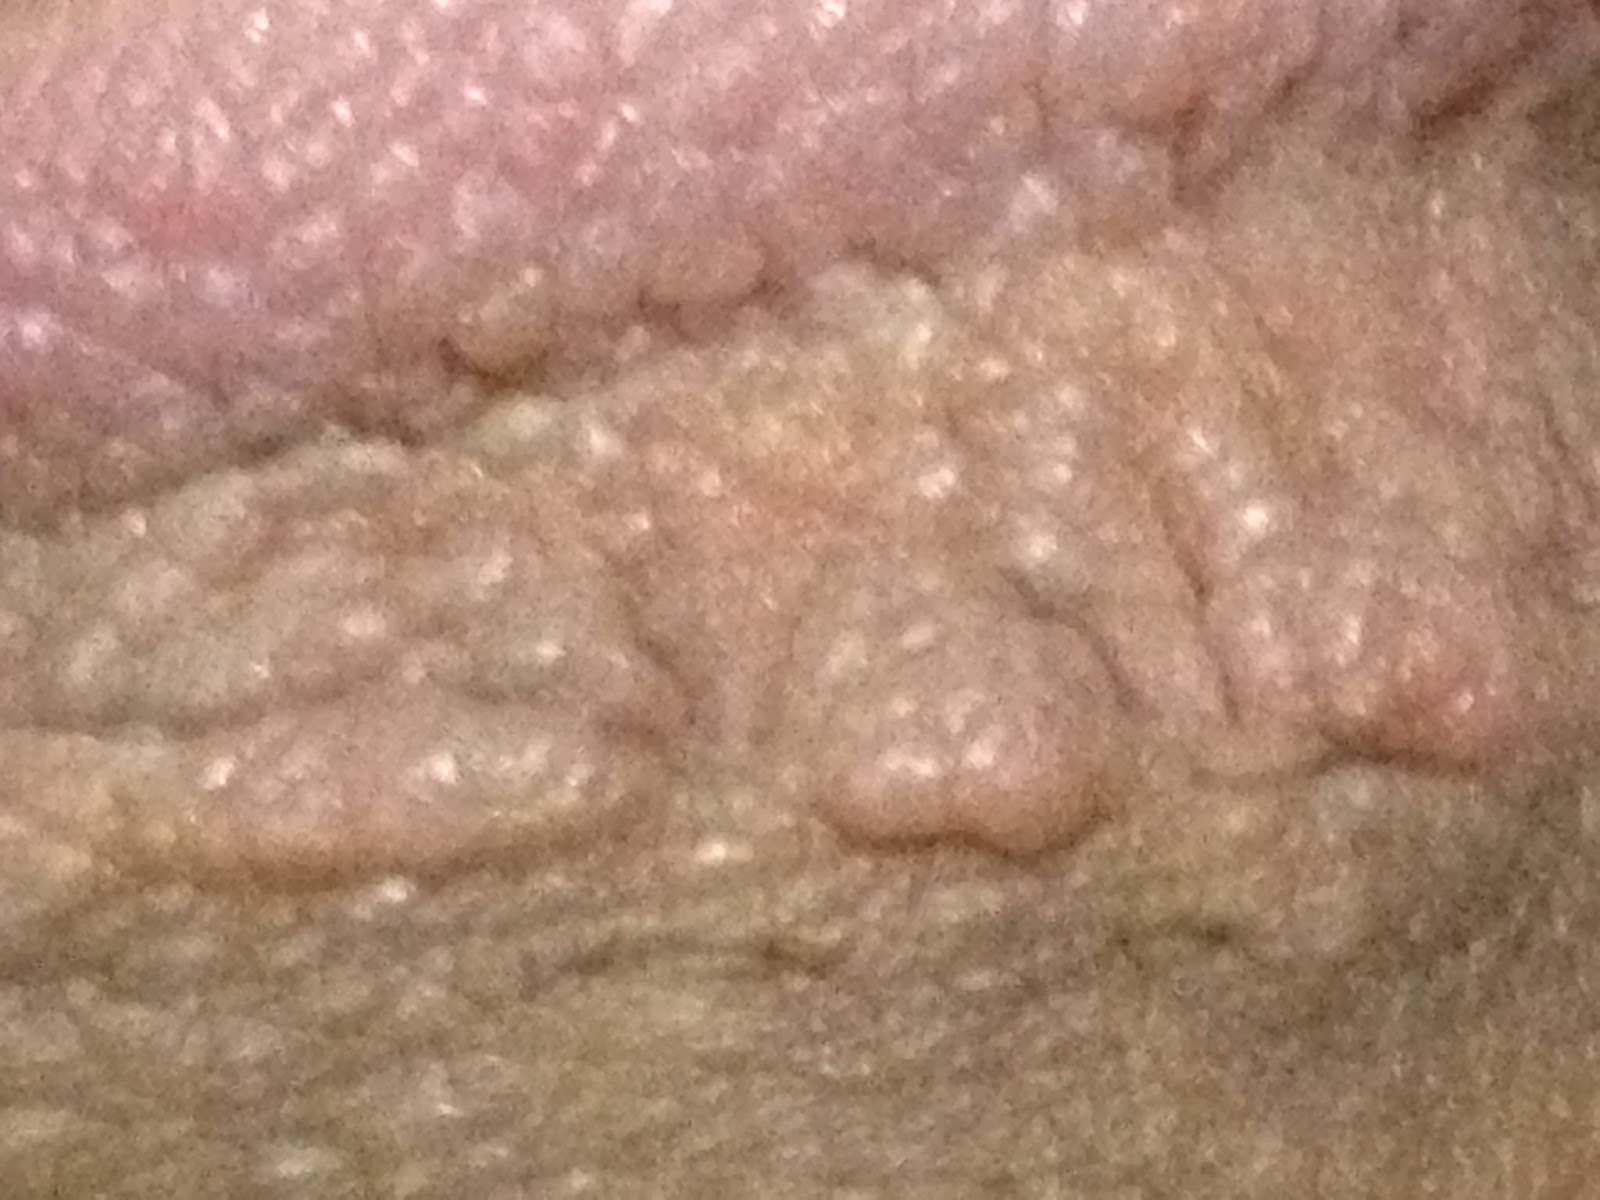 What Does A Genital Wart Look Like On A Male